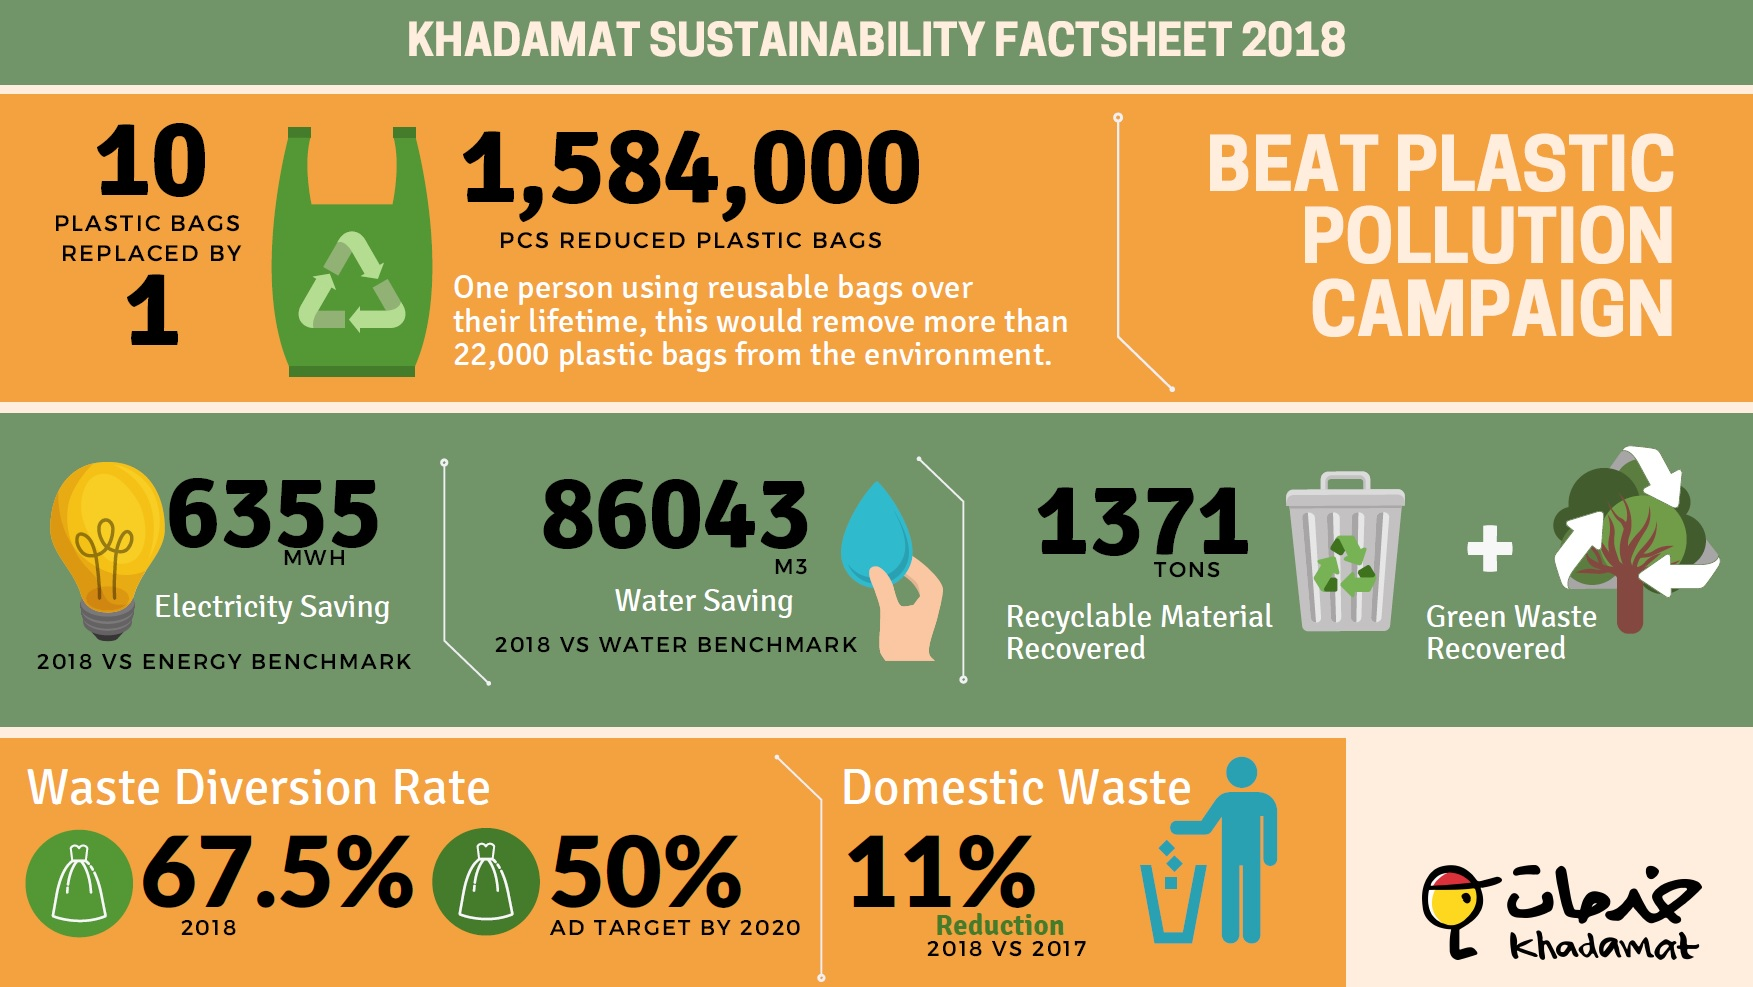 khadamat sustainability factsheet